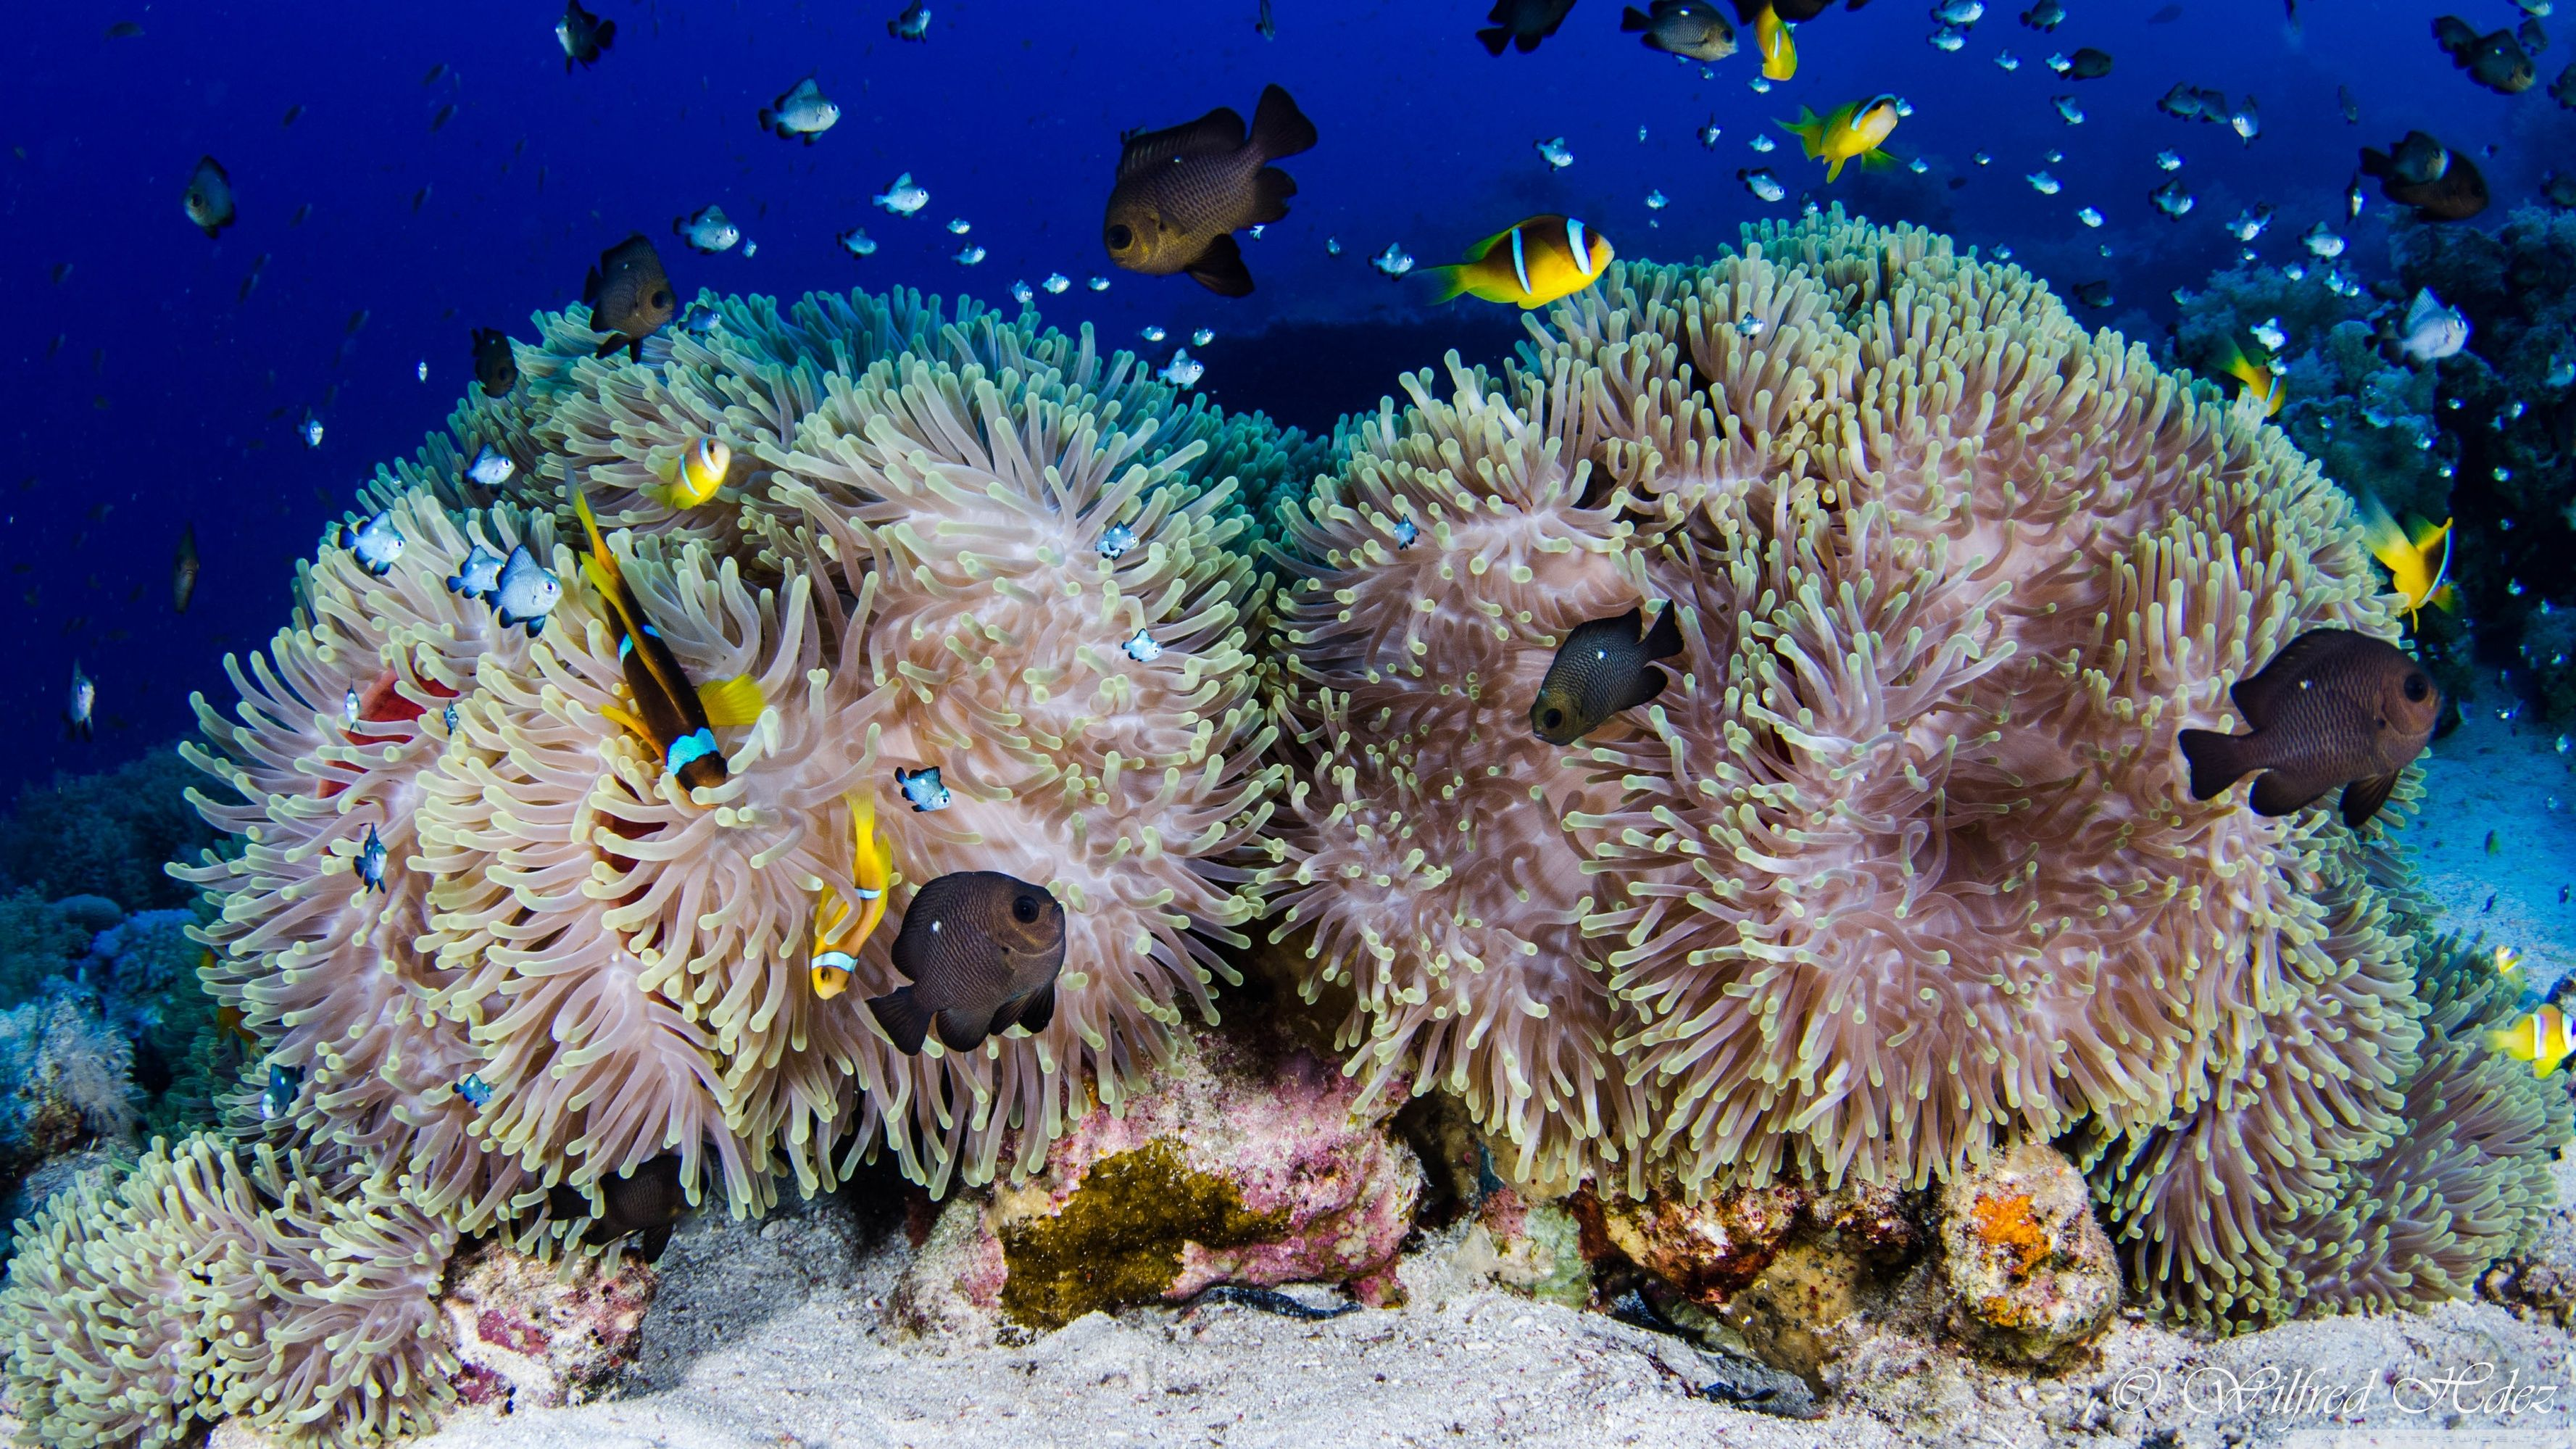 Coral Reef 4K Dual Monitor Wallpapers - Top Free Coral ...